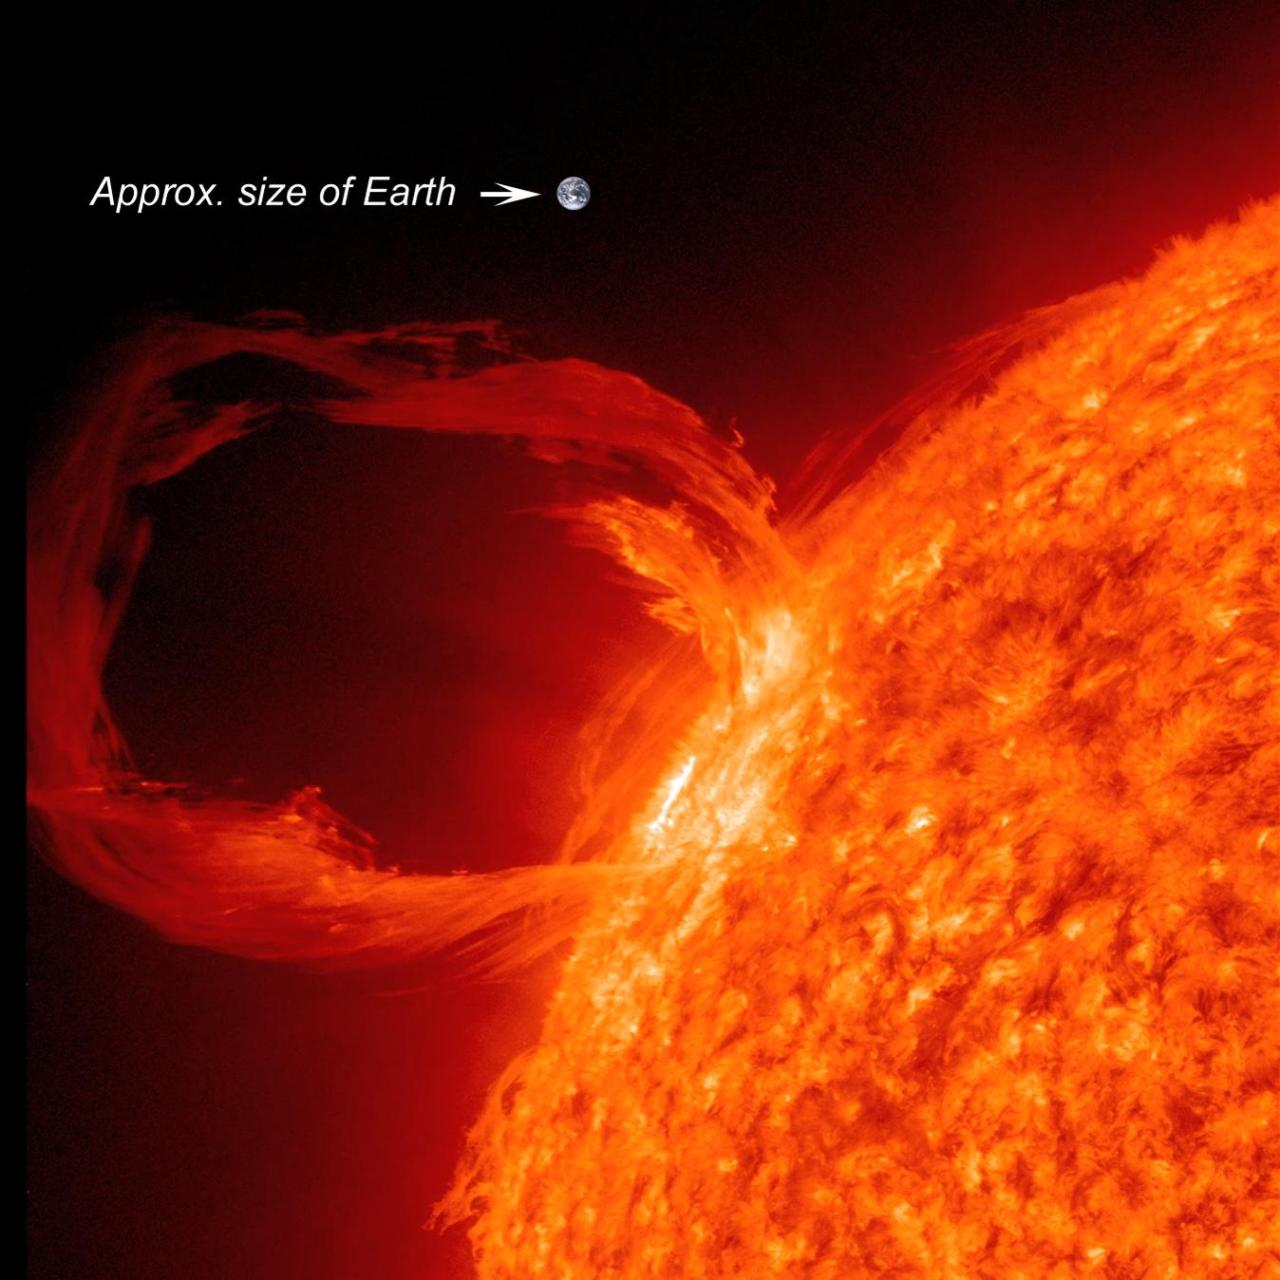 CME (Coronal Mass Ejection)